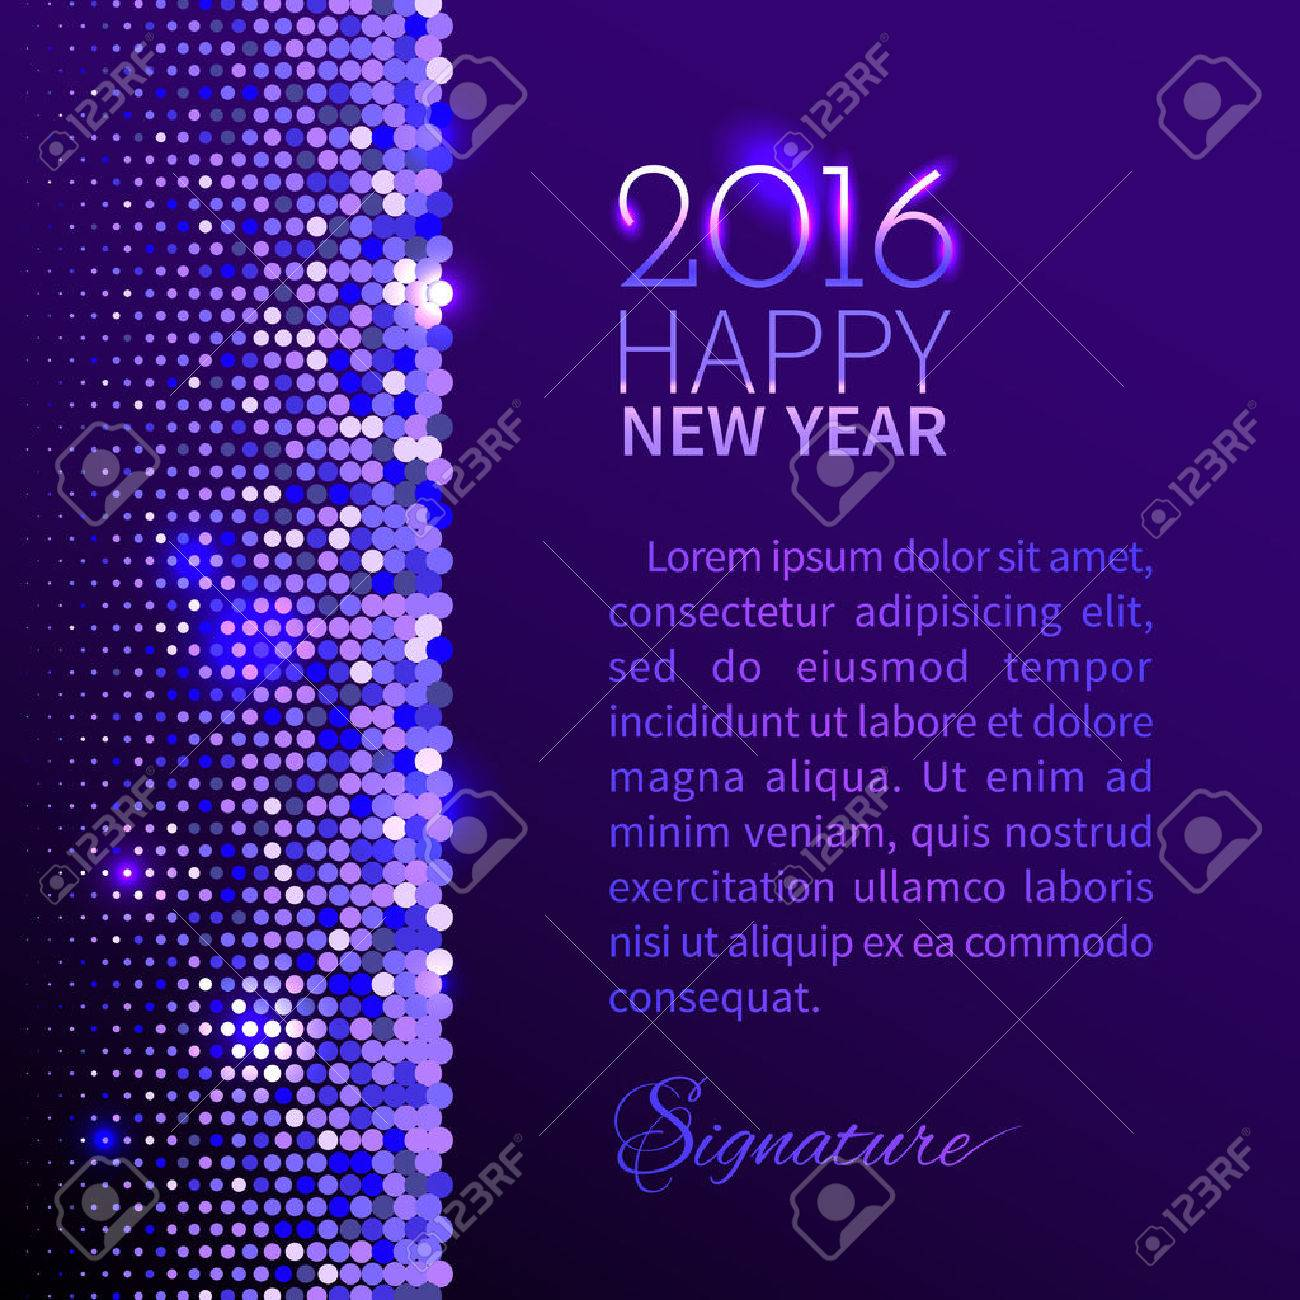 new year 2016 background purple shining vertical border with sparkling sequins in the disco style